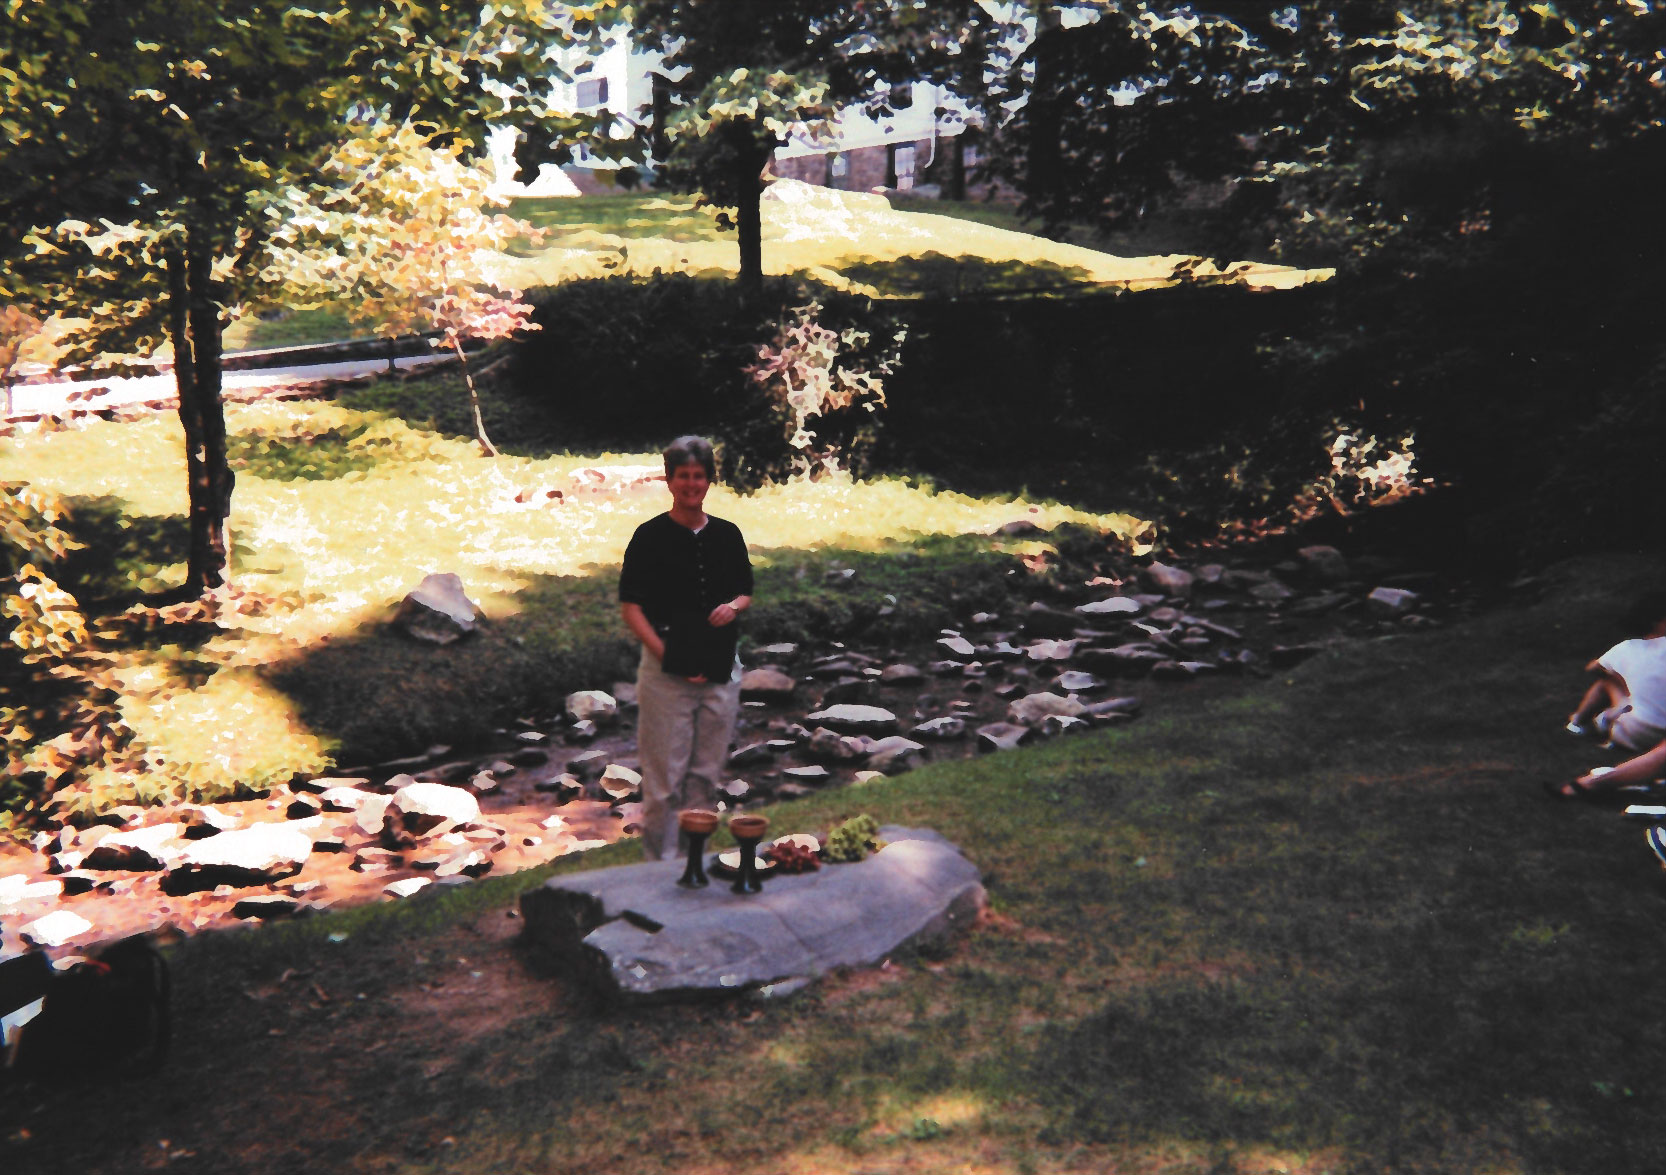 Crainshaw prepares to lead Eucharist for the School of Divinity community during a retreat in 1999.